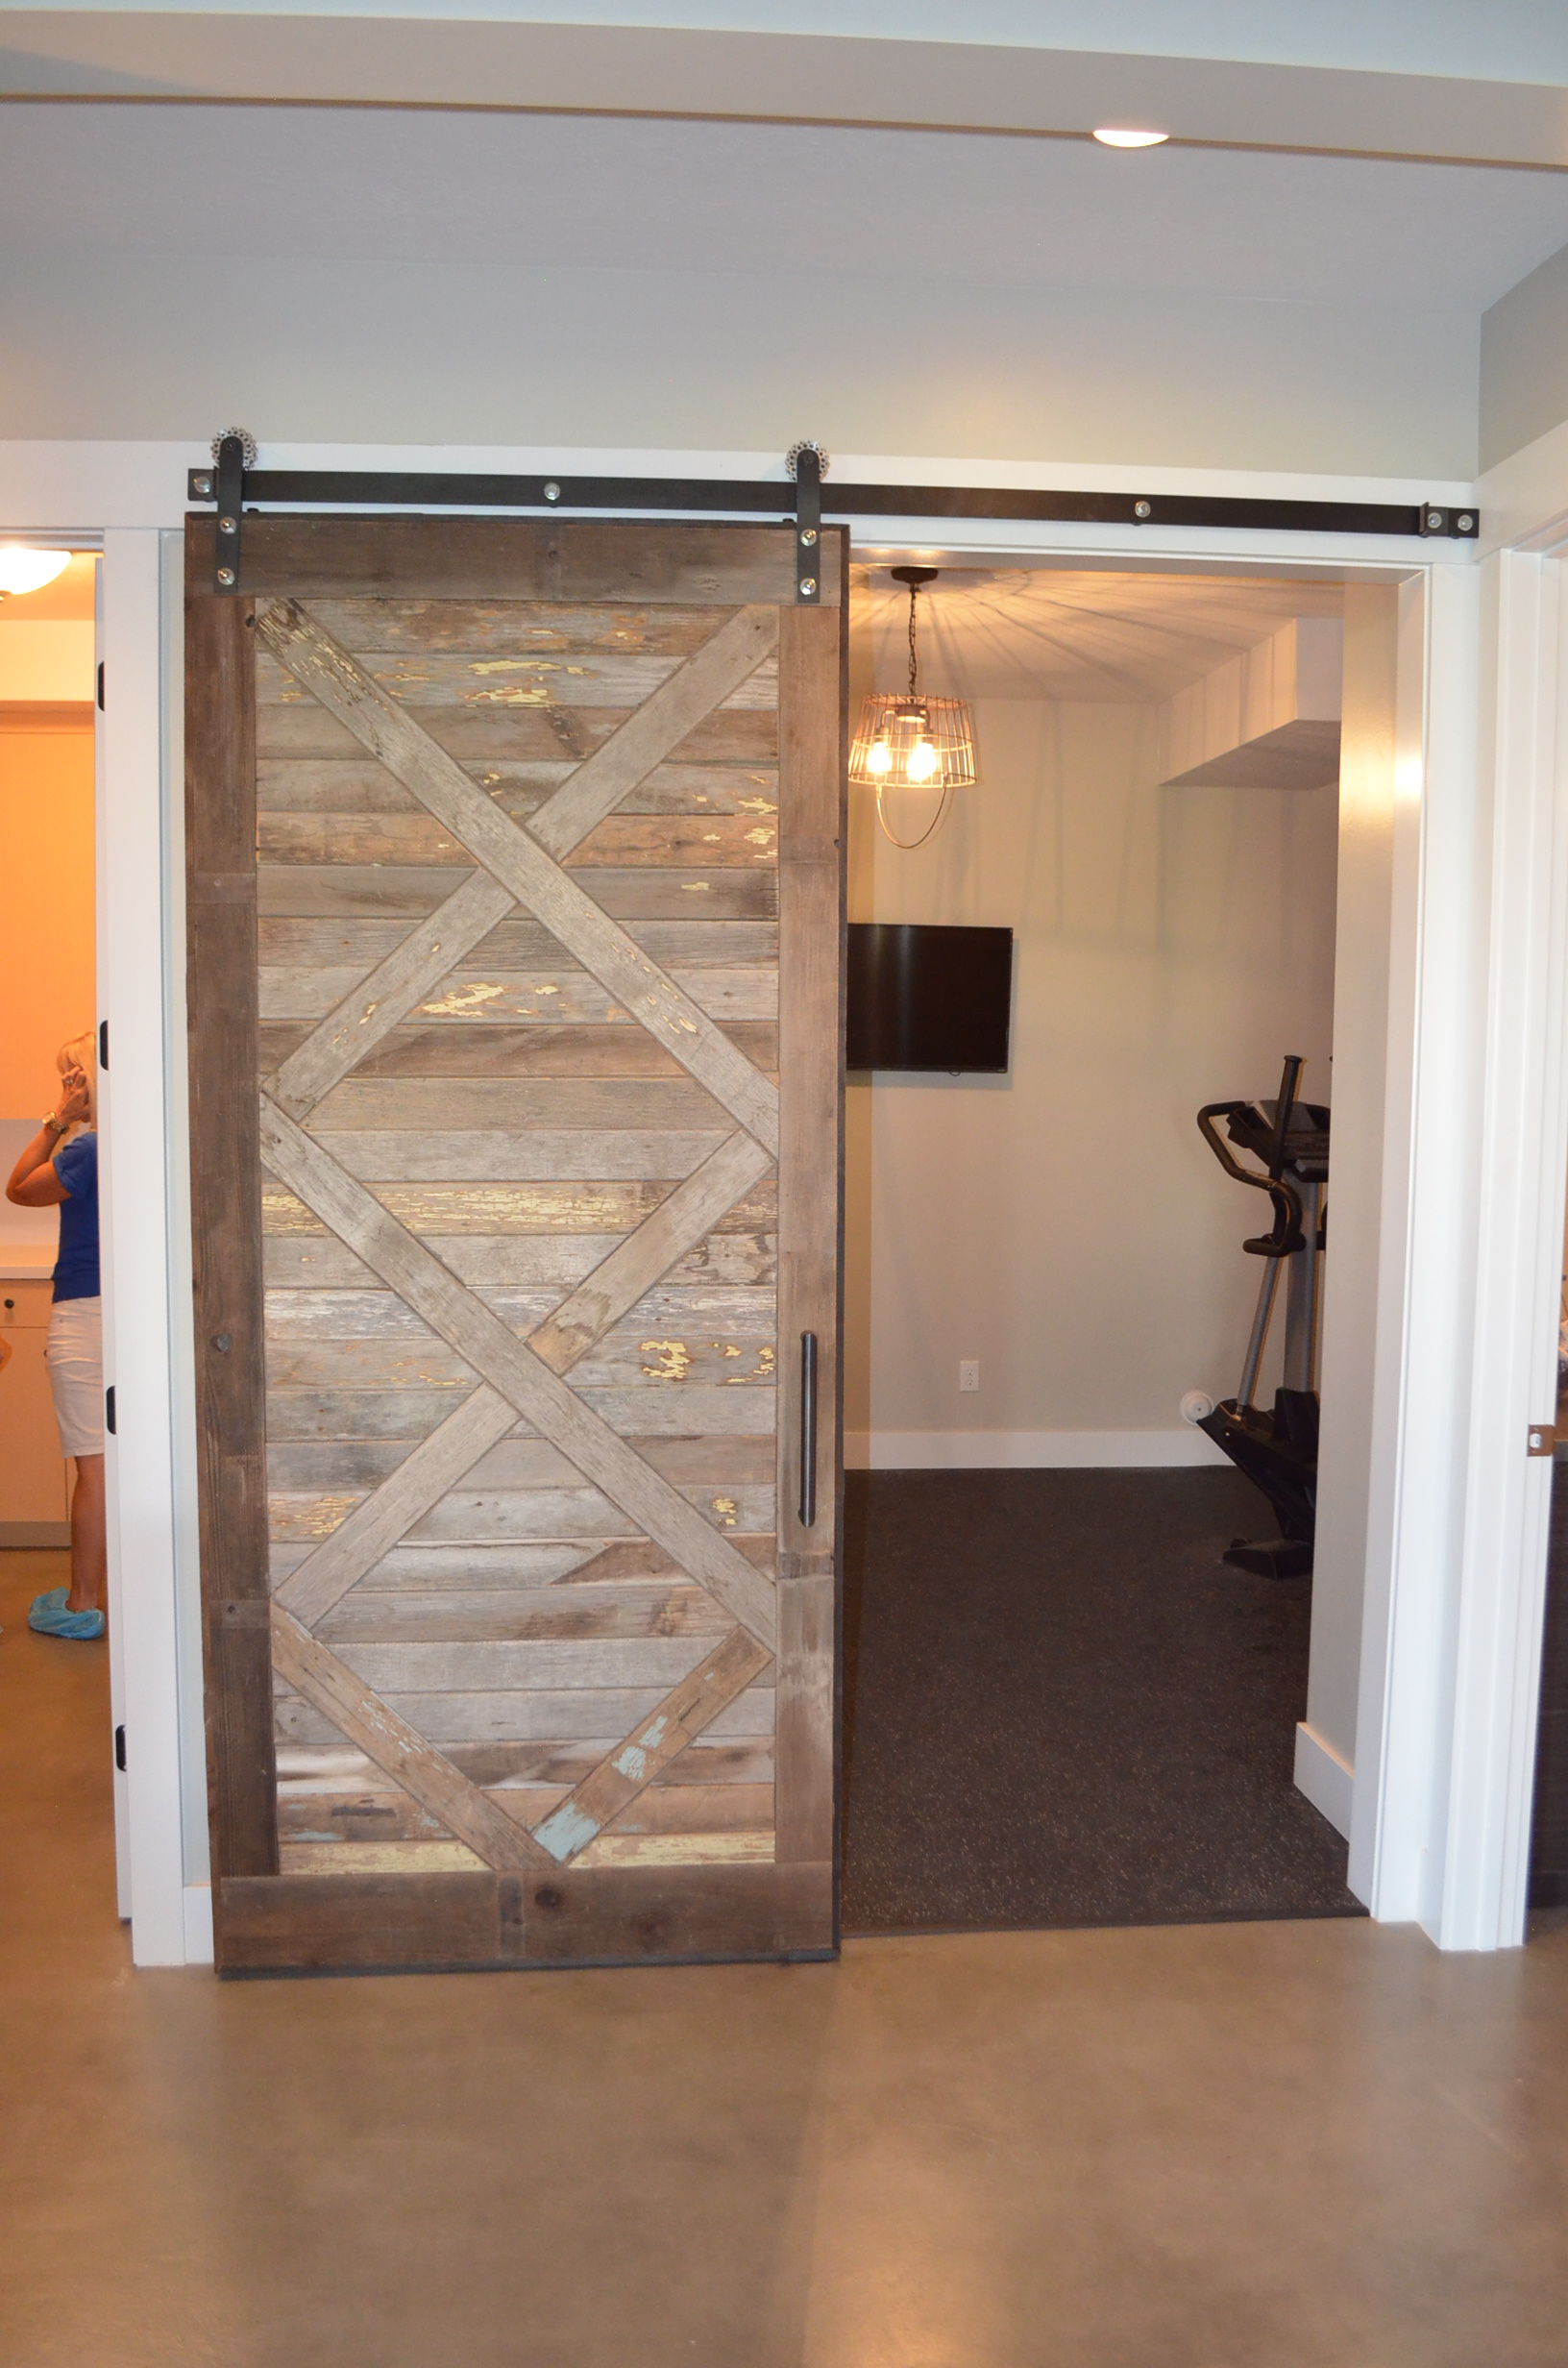 10 Barn Door Designs For Any Style Home - Page 3 of 11